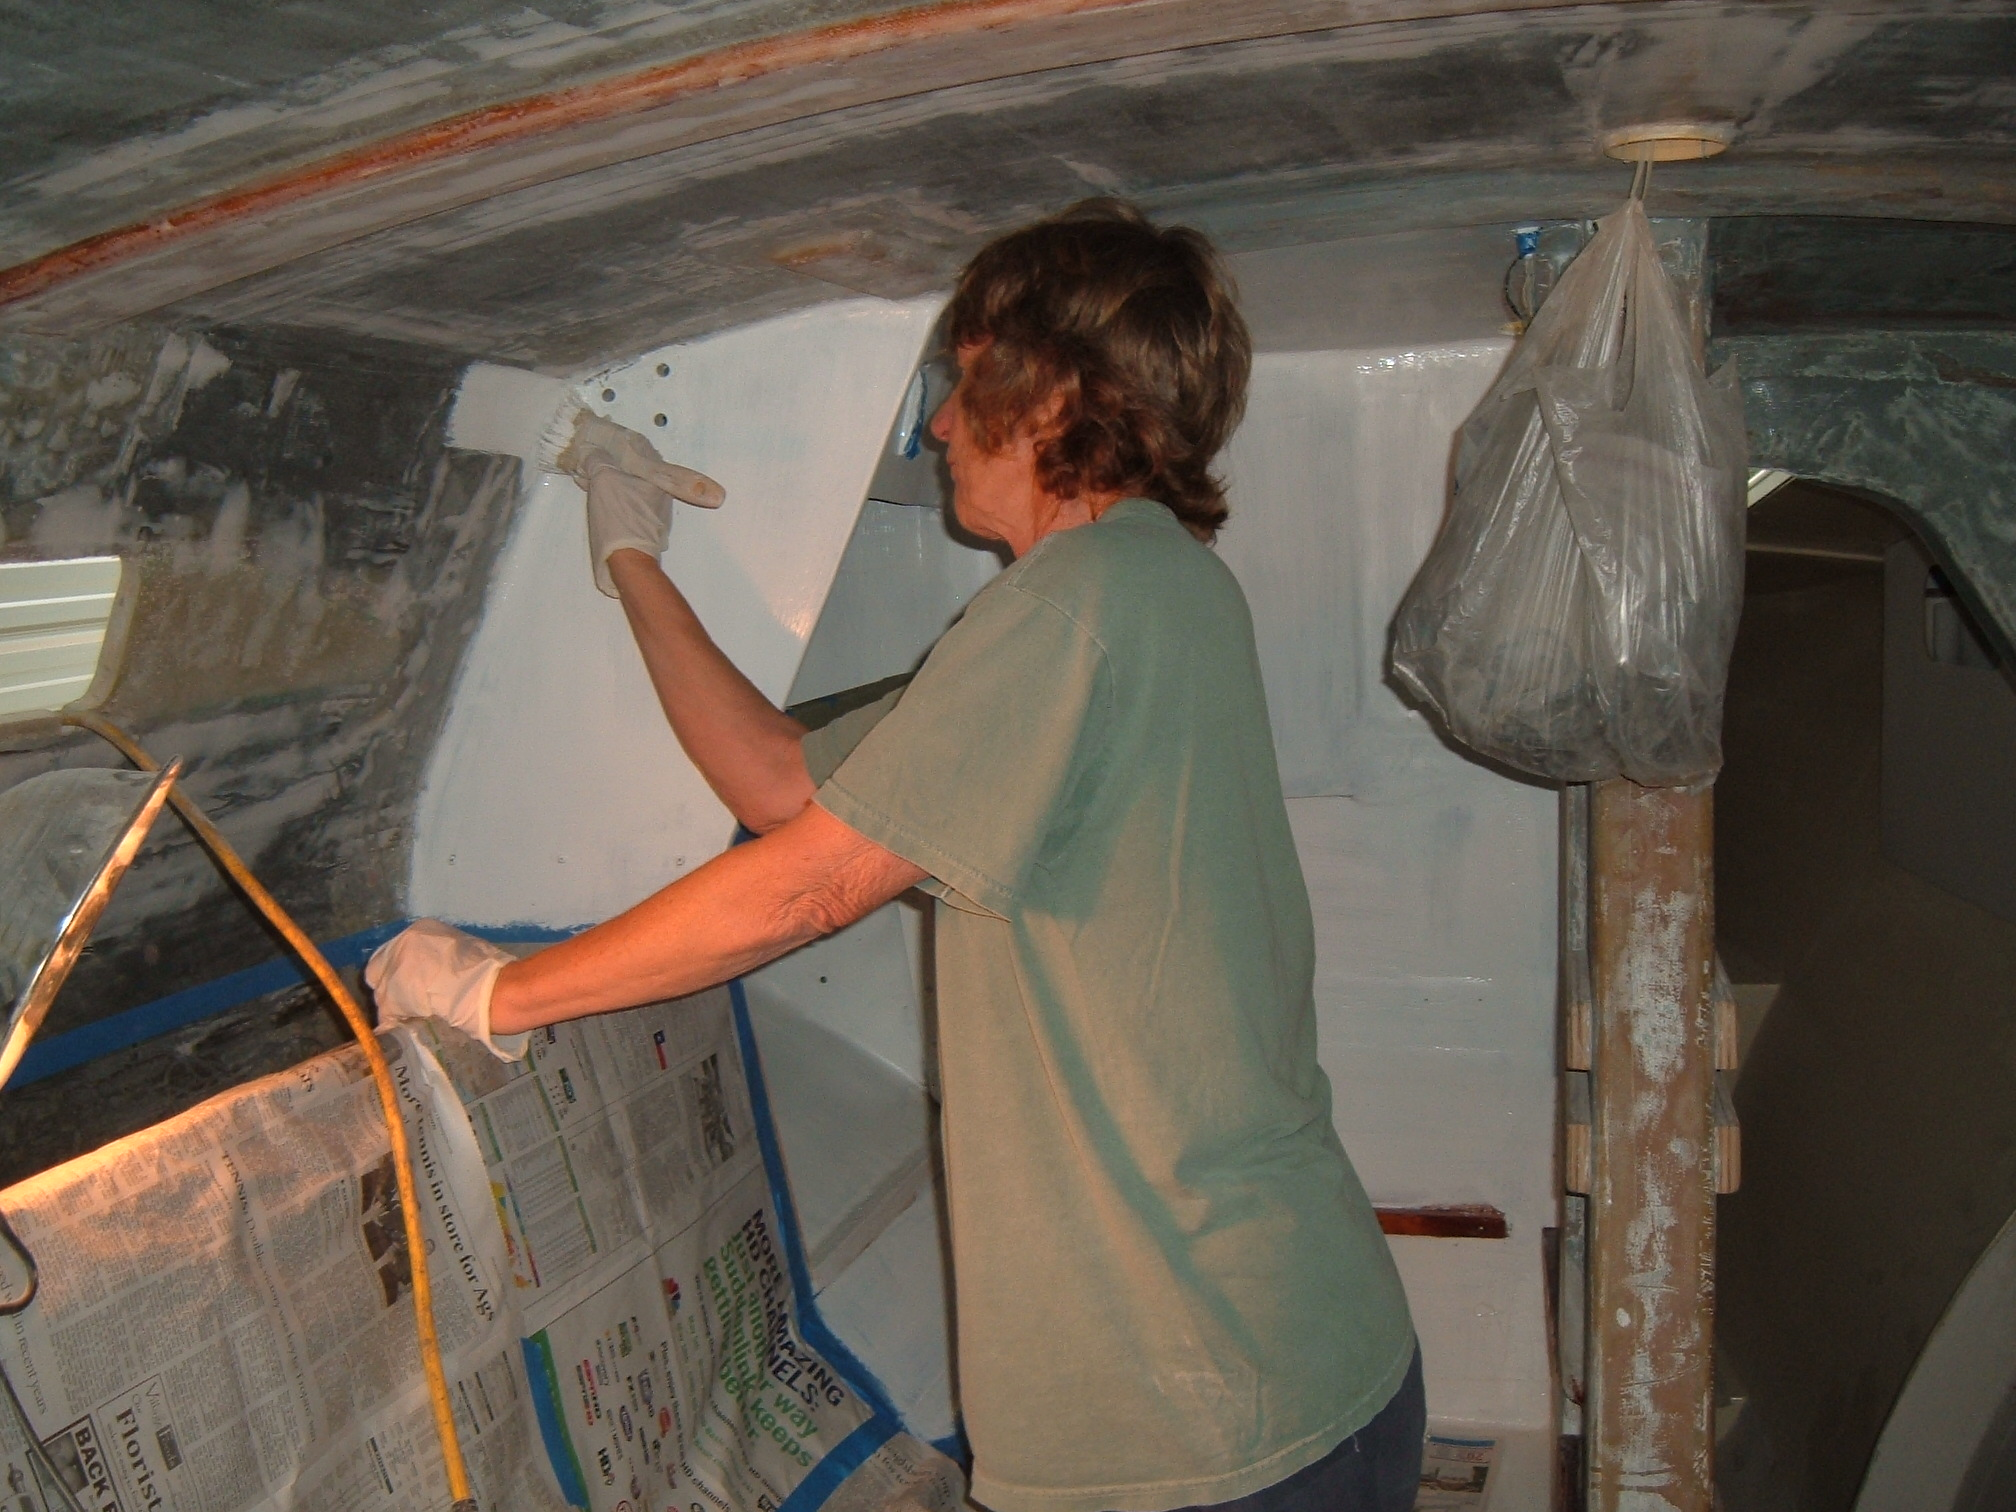 Boat Interior Painting Services Yacht Interior Painting Services - BASCO -01 & Boat Interior Painting Services | Yacht Interior Painting Services ...